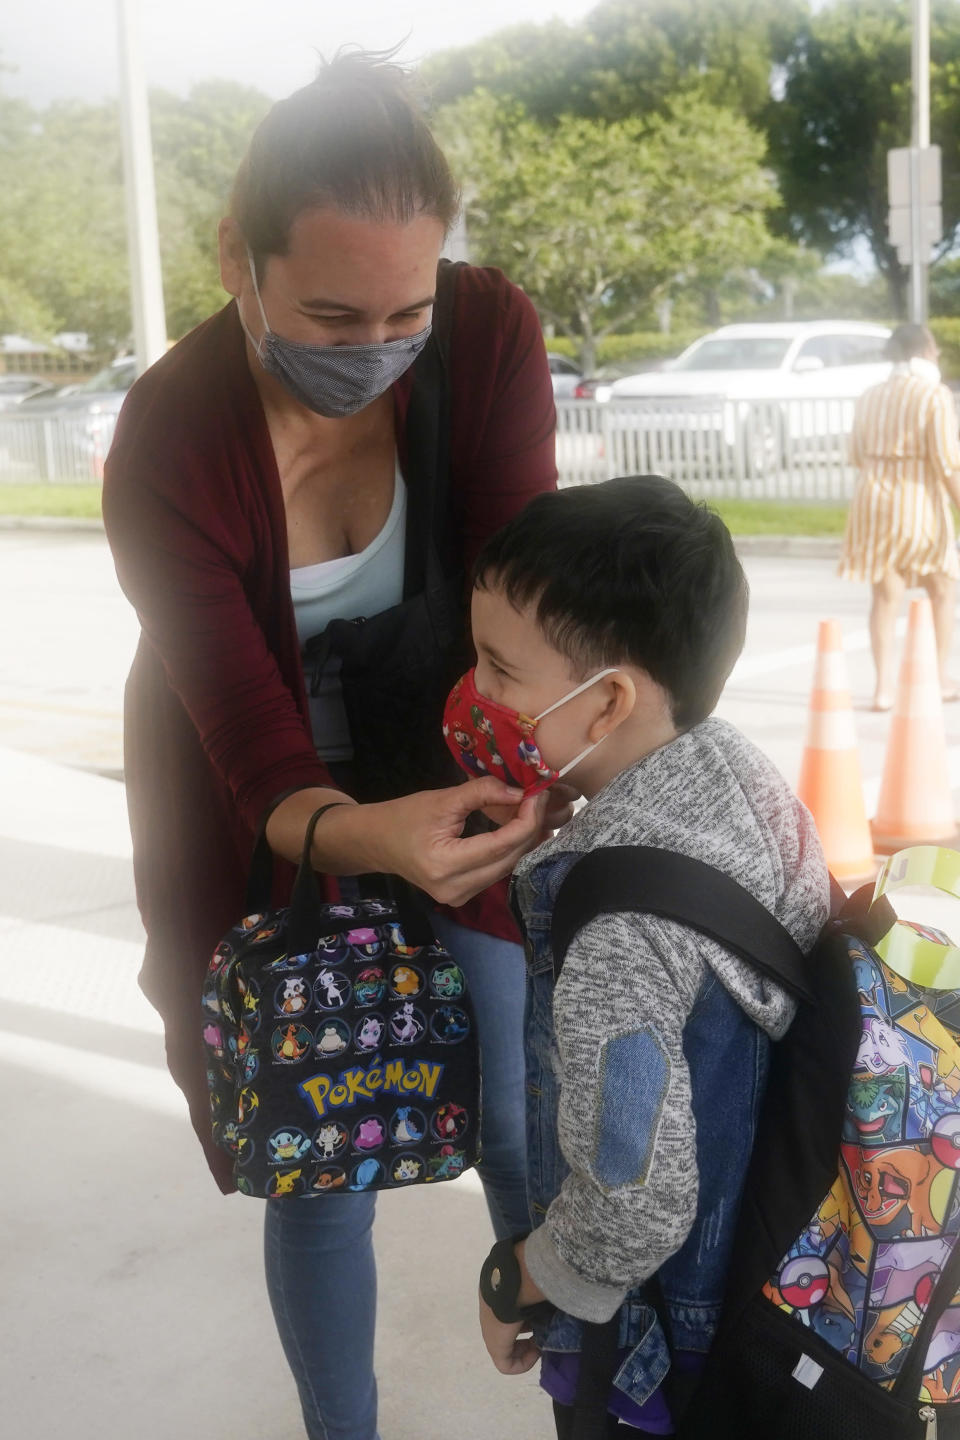 Cynthia Fernandez adjusts the facemark on her son Dael Fernandez, during his first day at Dolphin Bay Elementary School, Wednesday, Aug. 18, 2021, in Miramar, Fla. Broward County School board requires that masks be worn at all public schools. (AP Photo/Marta Lavandier)